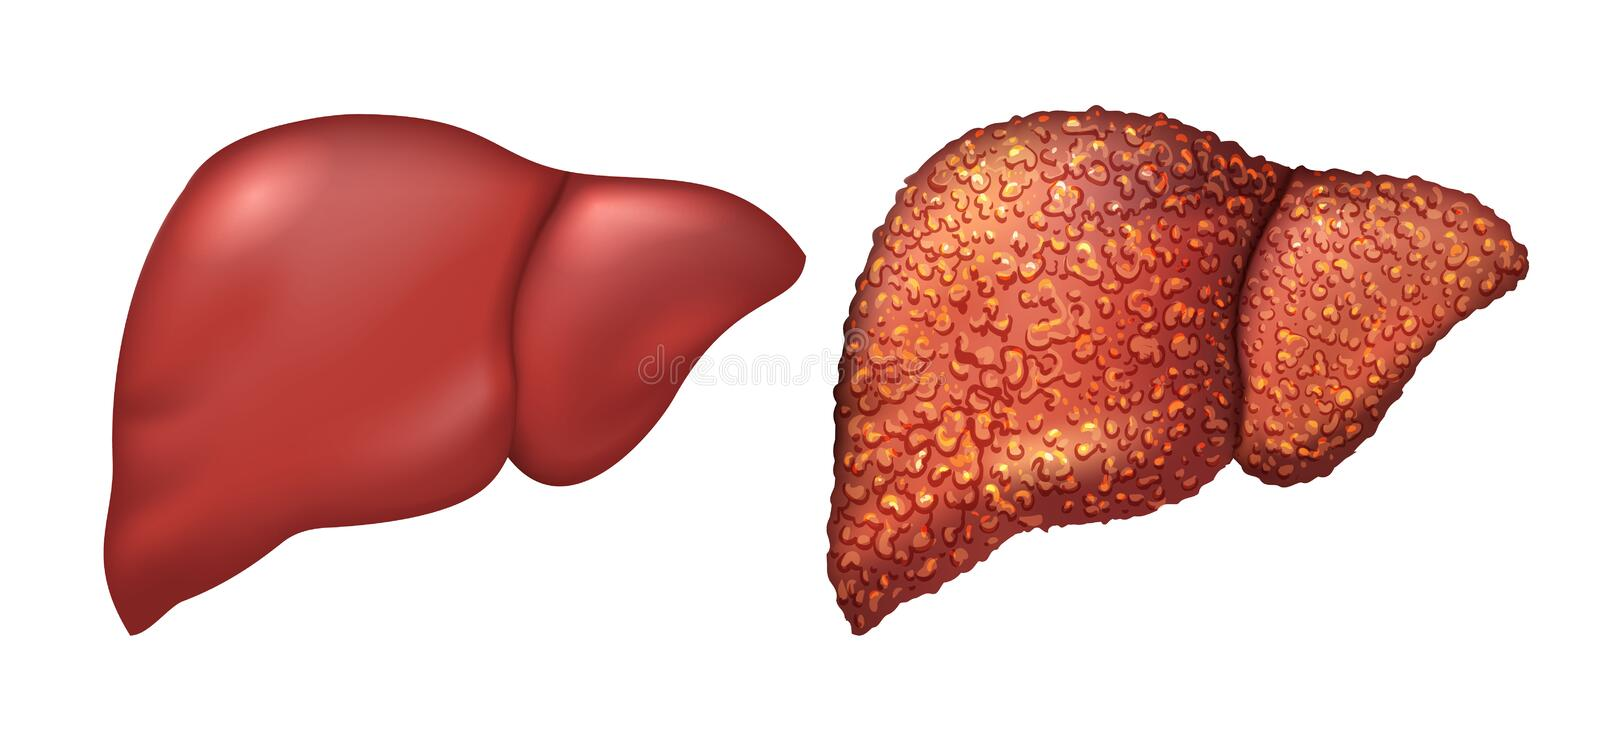 Liver of healthy person. Liver patients with hepatitis. Liver is sick person. Cirrhosis of liver. Repercussion alcoholism. Isolated on white vector vector illustration